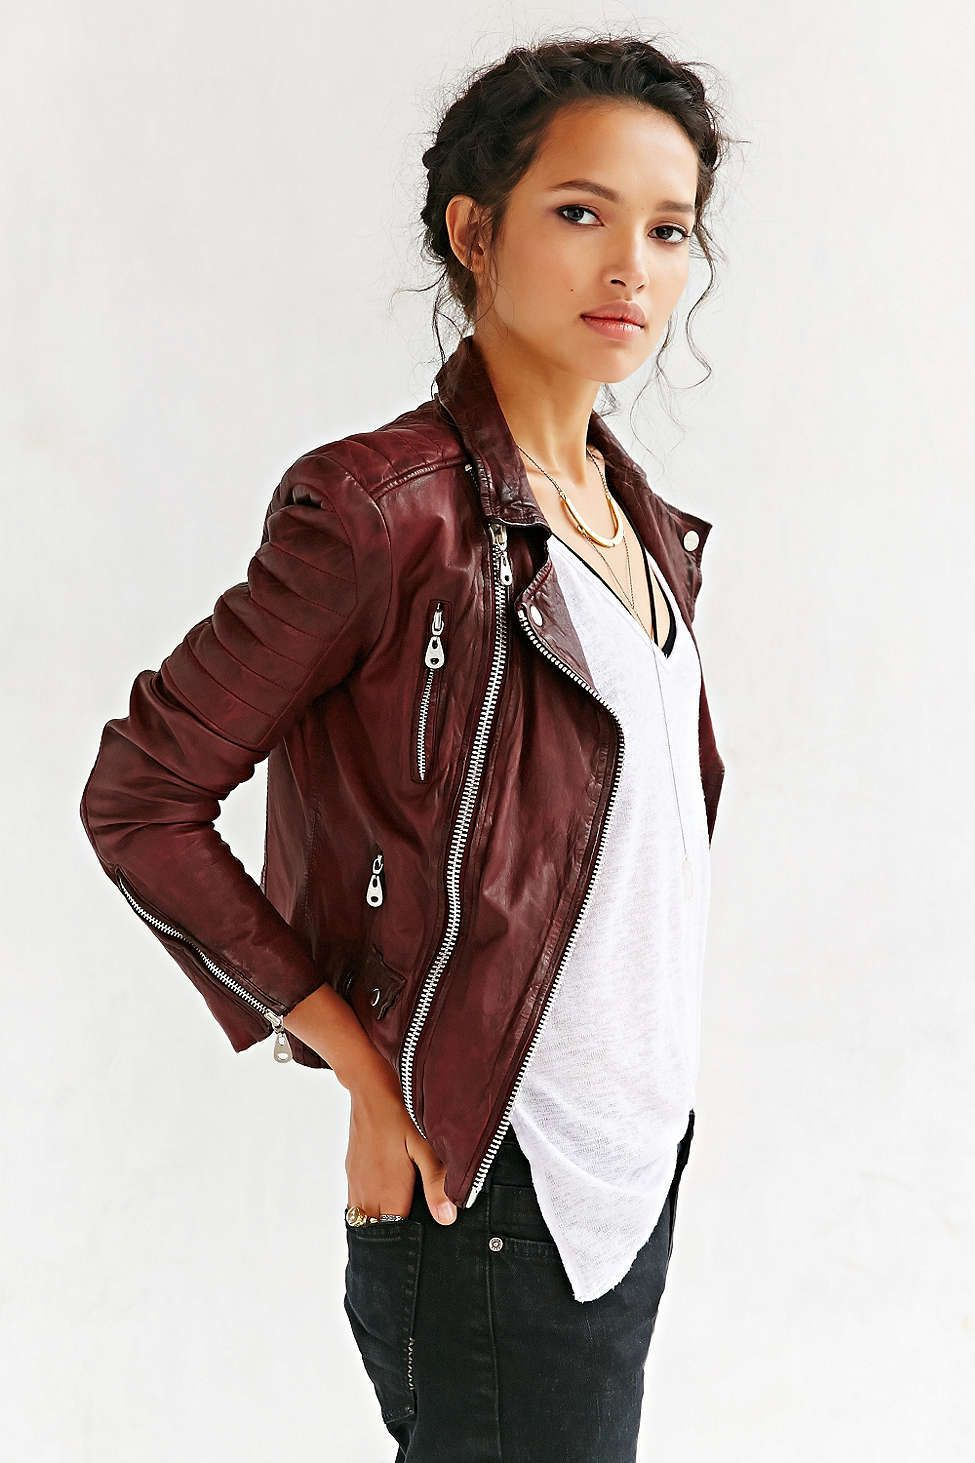 Red leather jacket outfit